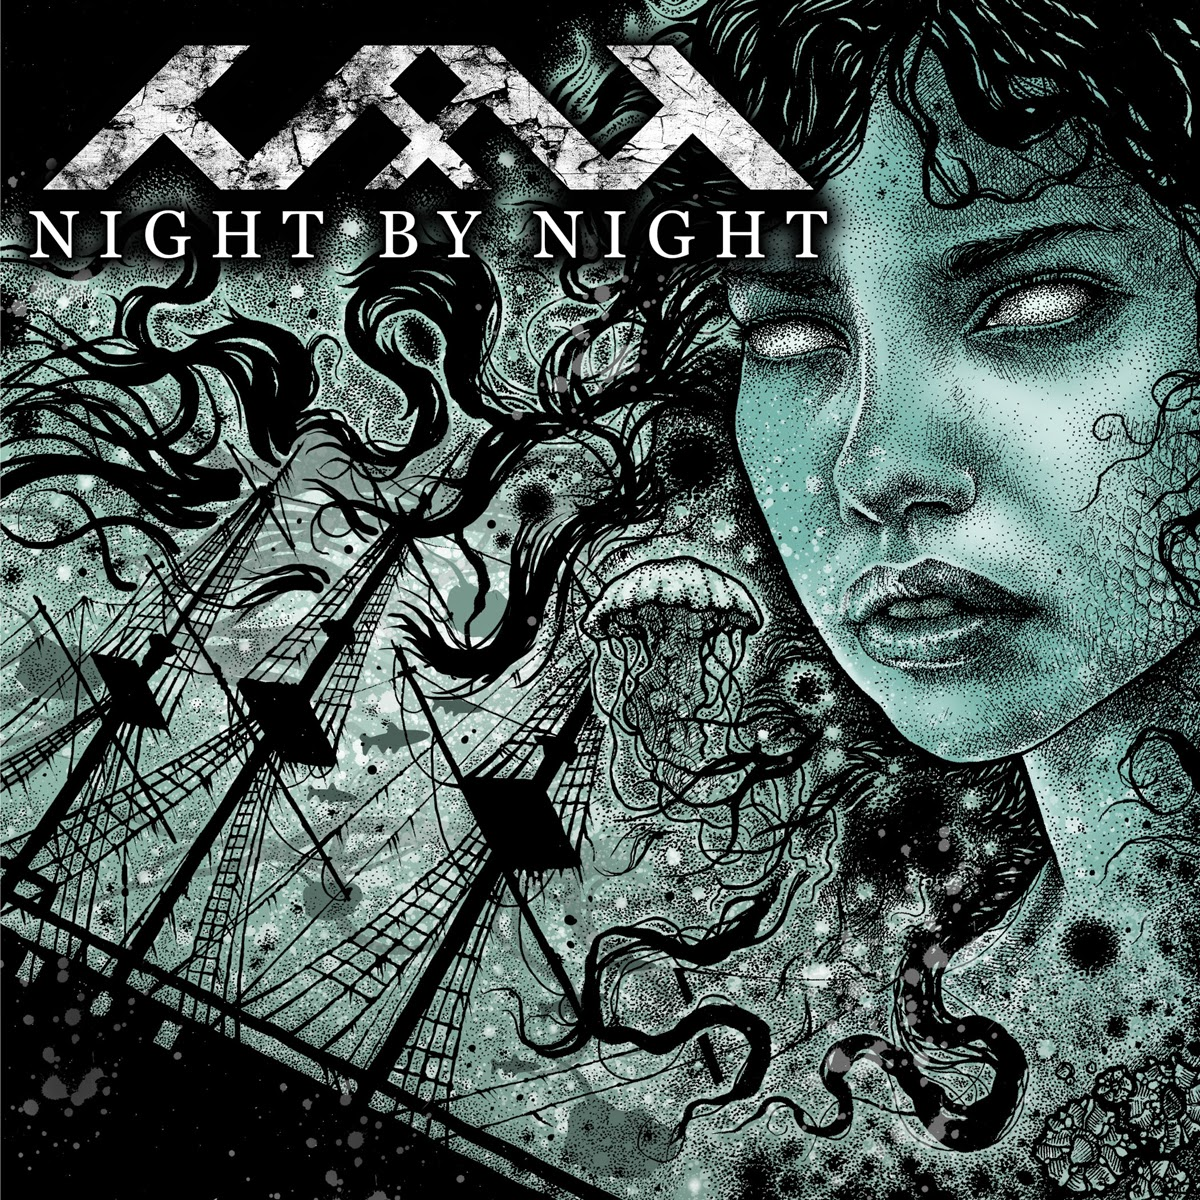 http://rock-and-metal-4-you.blogspot.de/2014/07/cd-review-night-by-night-nxn.html